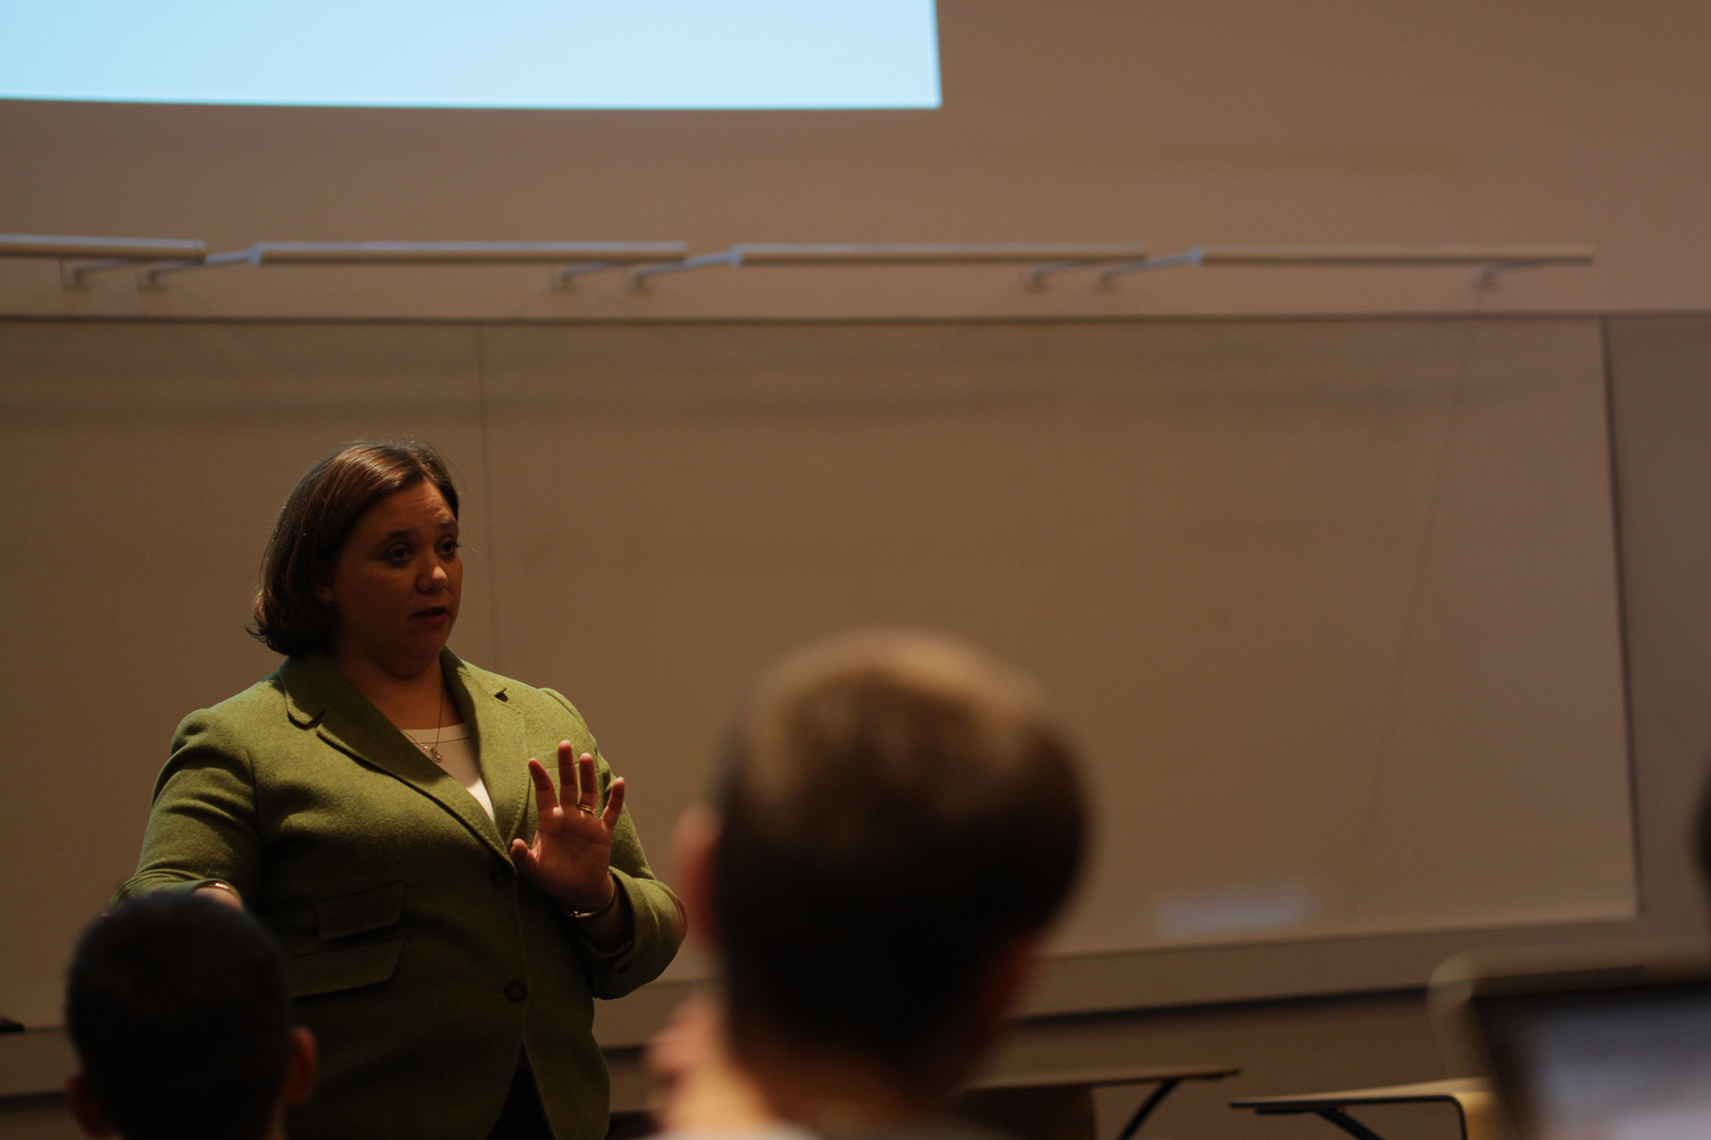 Jennifer Lease Butts,assistant vice provost for enrichment programs and director of the honors program, speaks at a town hall meeting in Laurel Hall in Storrs, Connecticut on Thursday, Nov. 19, 2015. (Mei Buzzell/The Daily Campus)